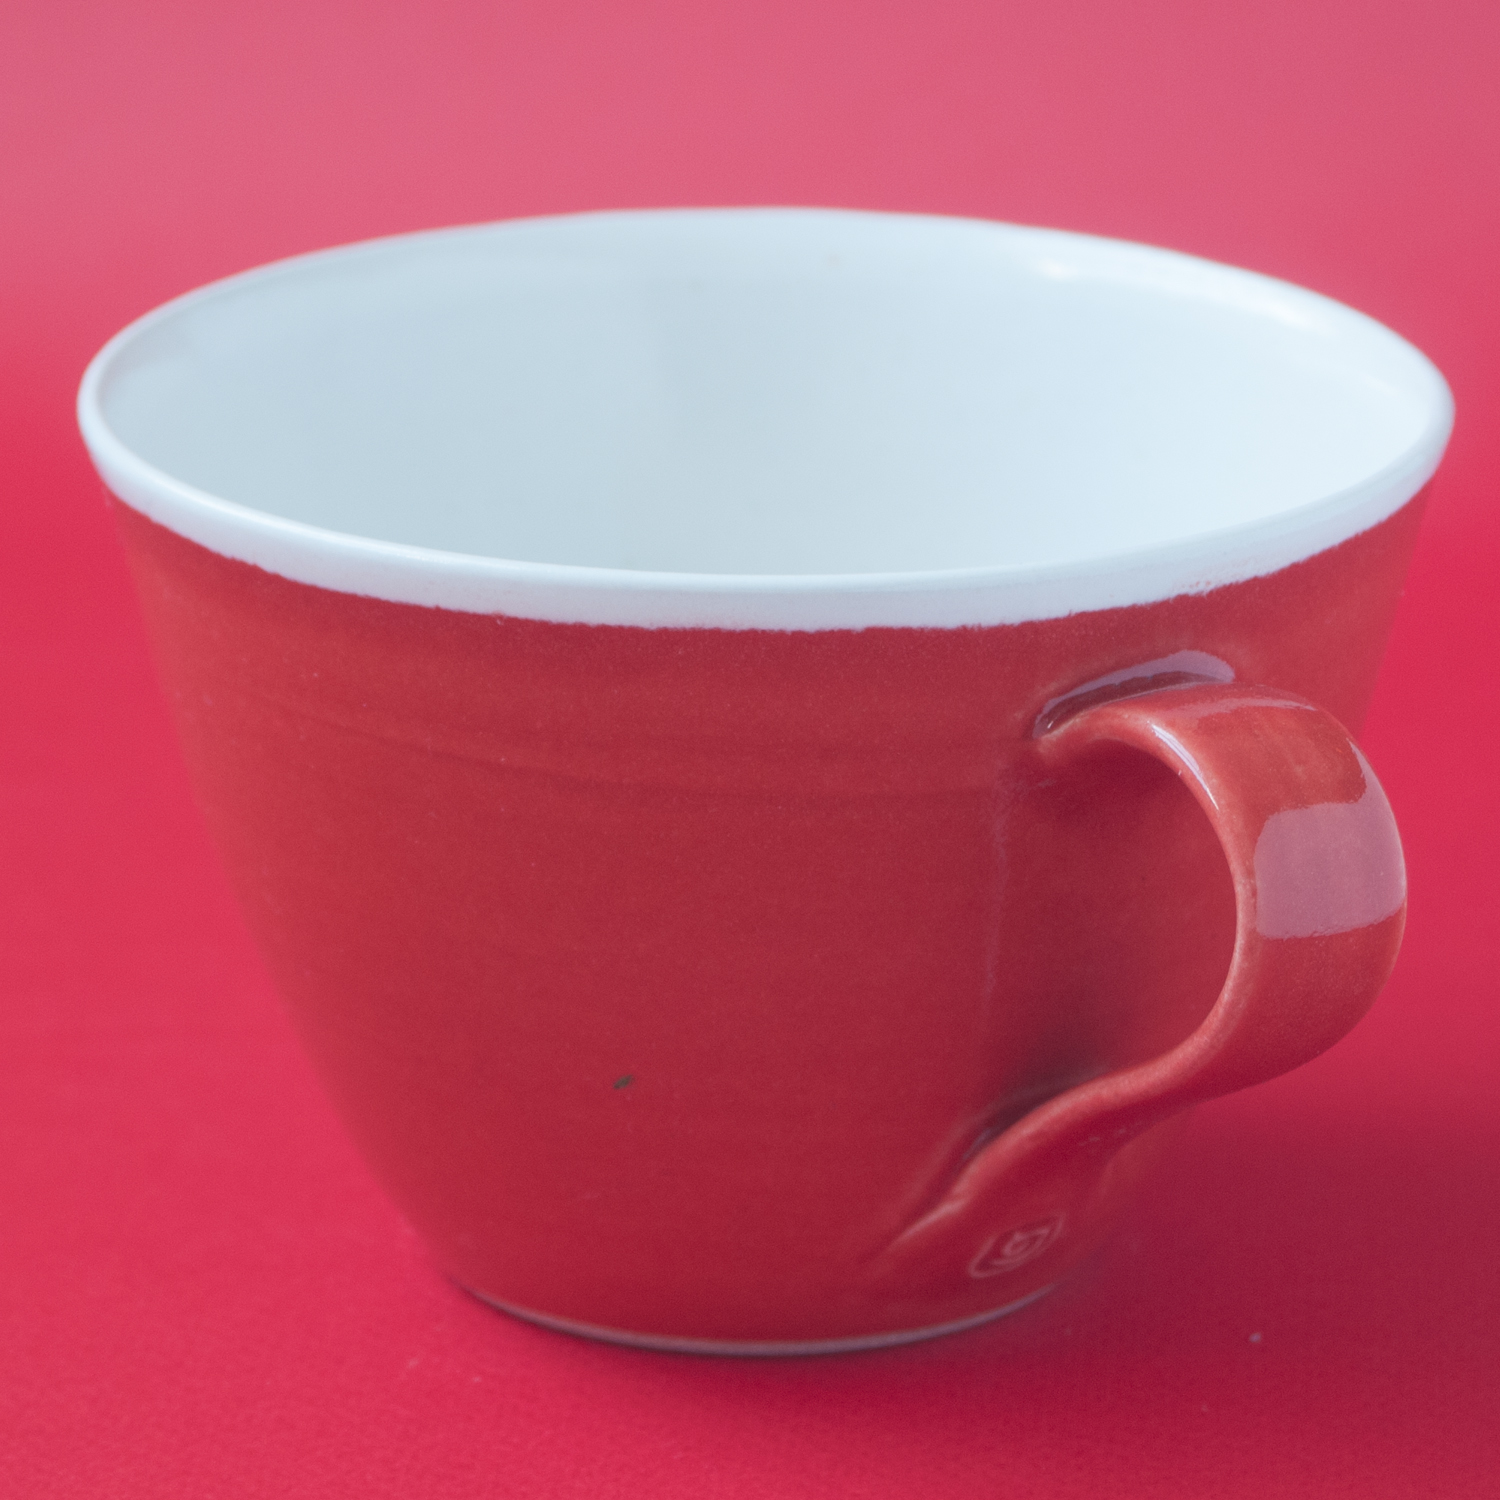 Topsy Jewell pottery cup